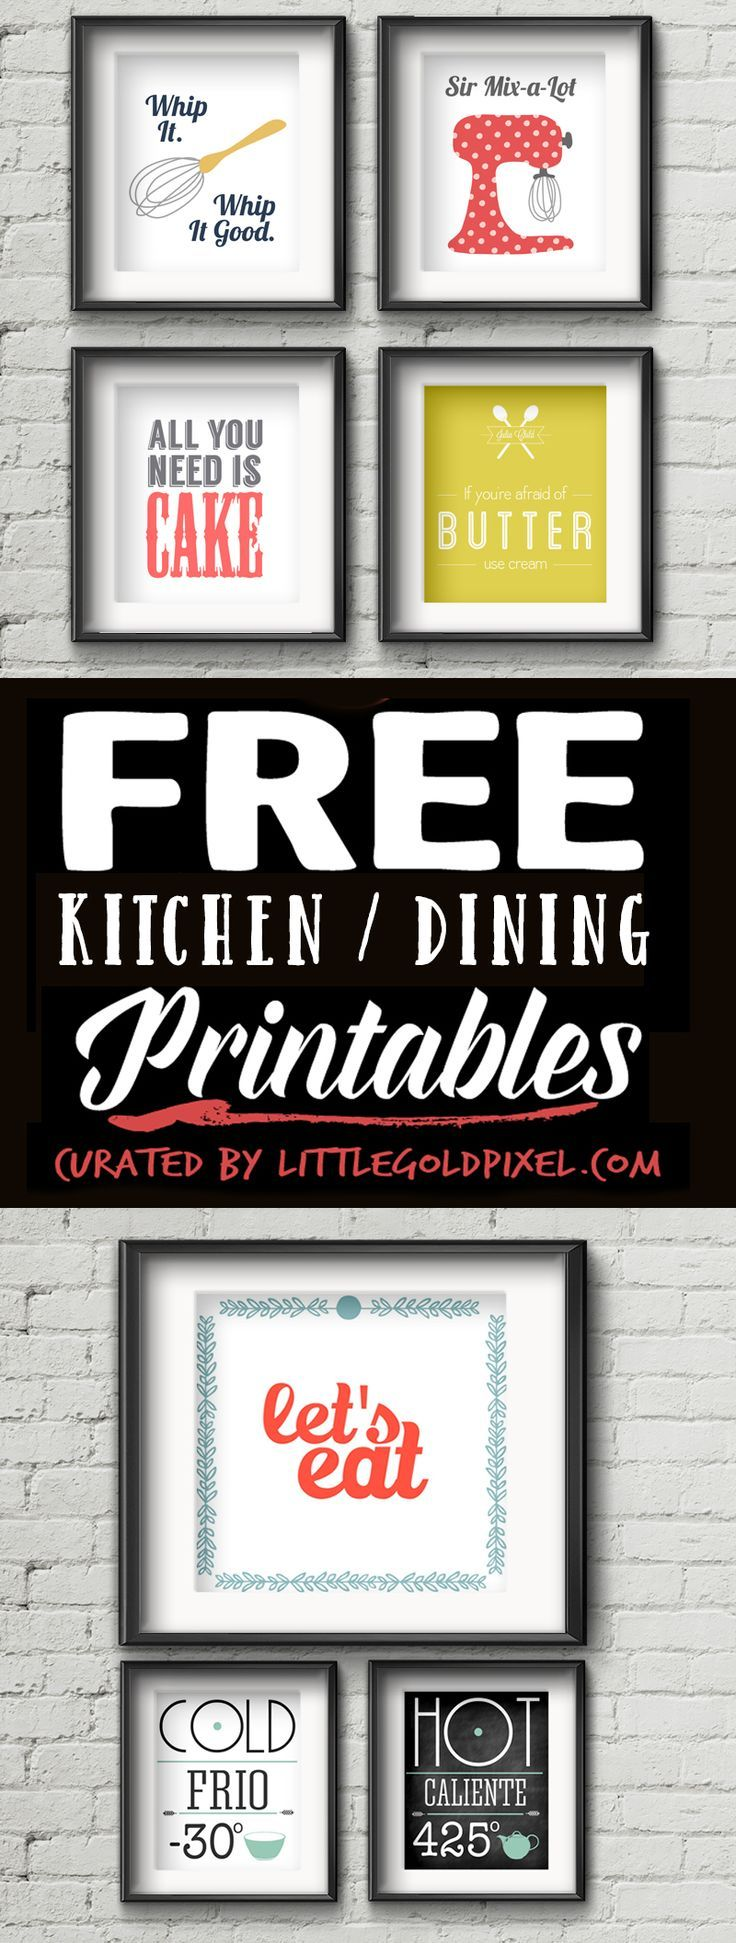 Bathroom wall art printables - Free Printables Kitchen Wall Art